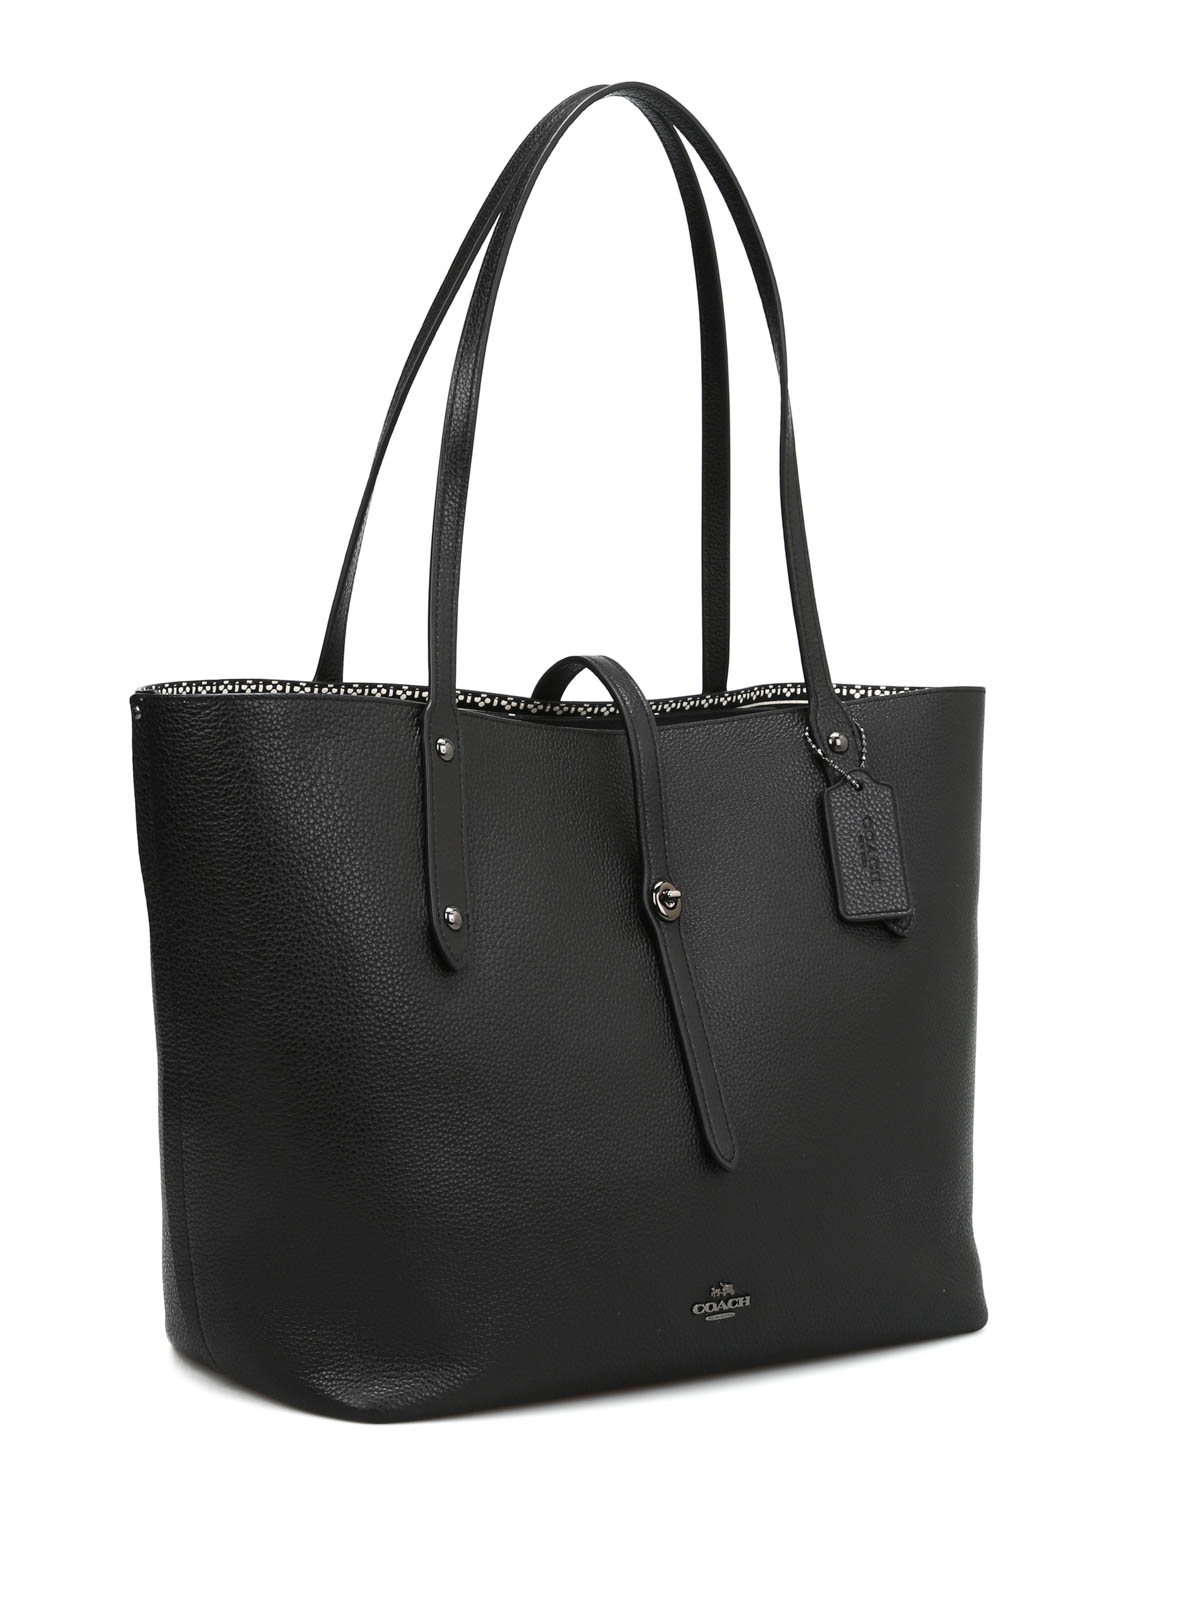 coach handbags marketing mix Coach outlet online shop,coach handbags factory outlet sale - buy the latest cheap coach purses,handbags,wallets,sunglasses accessories up to 85% off discount now, enjoy free shipping & free returns.